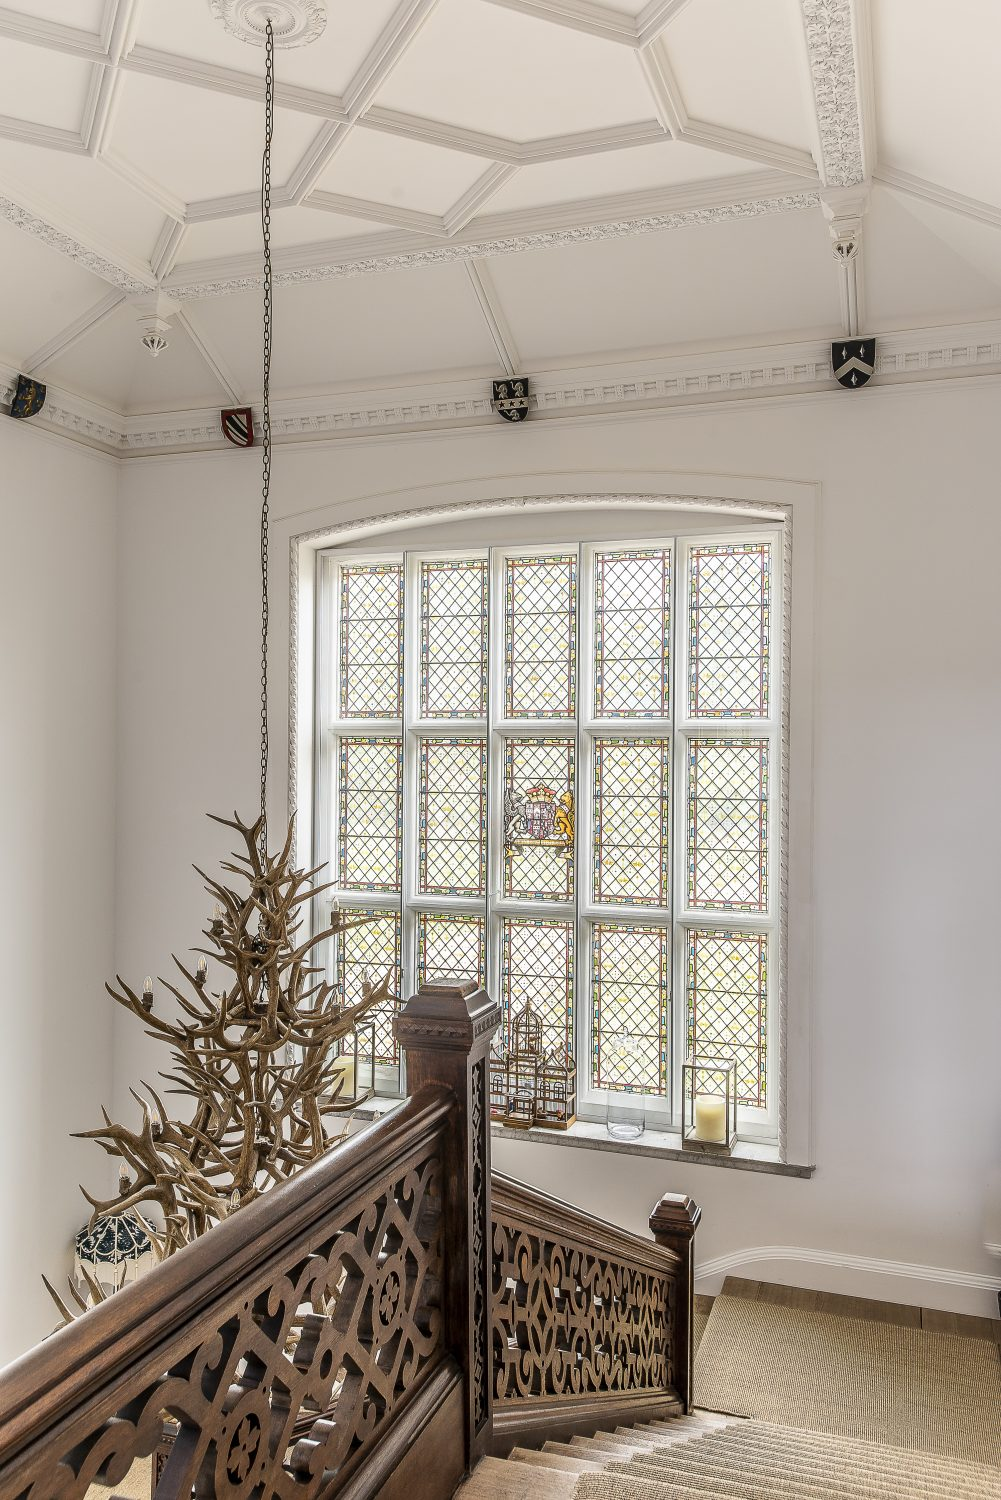 An enormous antler chandelier hangs down from the ceiling, whilst vibrant artworks and soft furnishing contrast with the white walls that bounce light from the hall's huge windows into every nook Right: A cathedral-like stained glass window dapples the hallway with softly coloured light